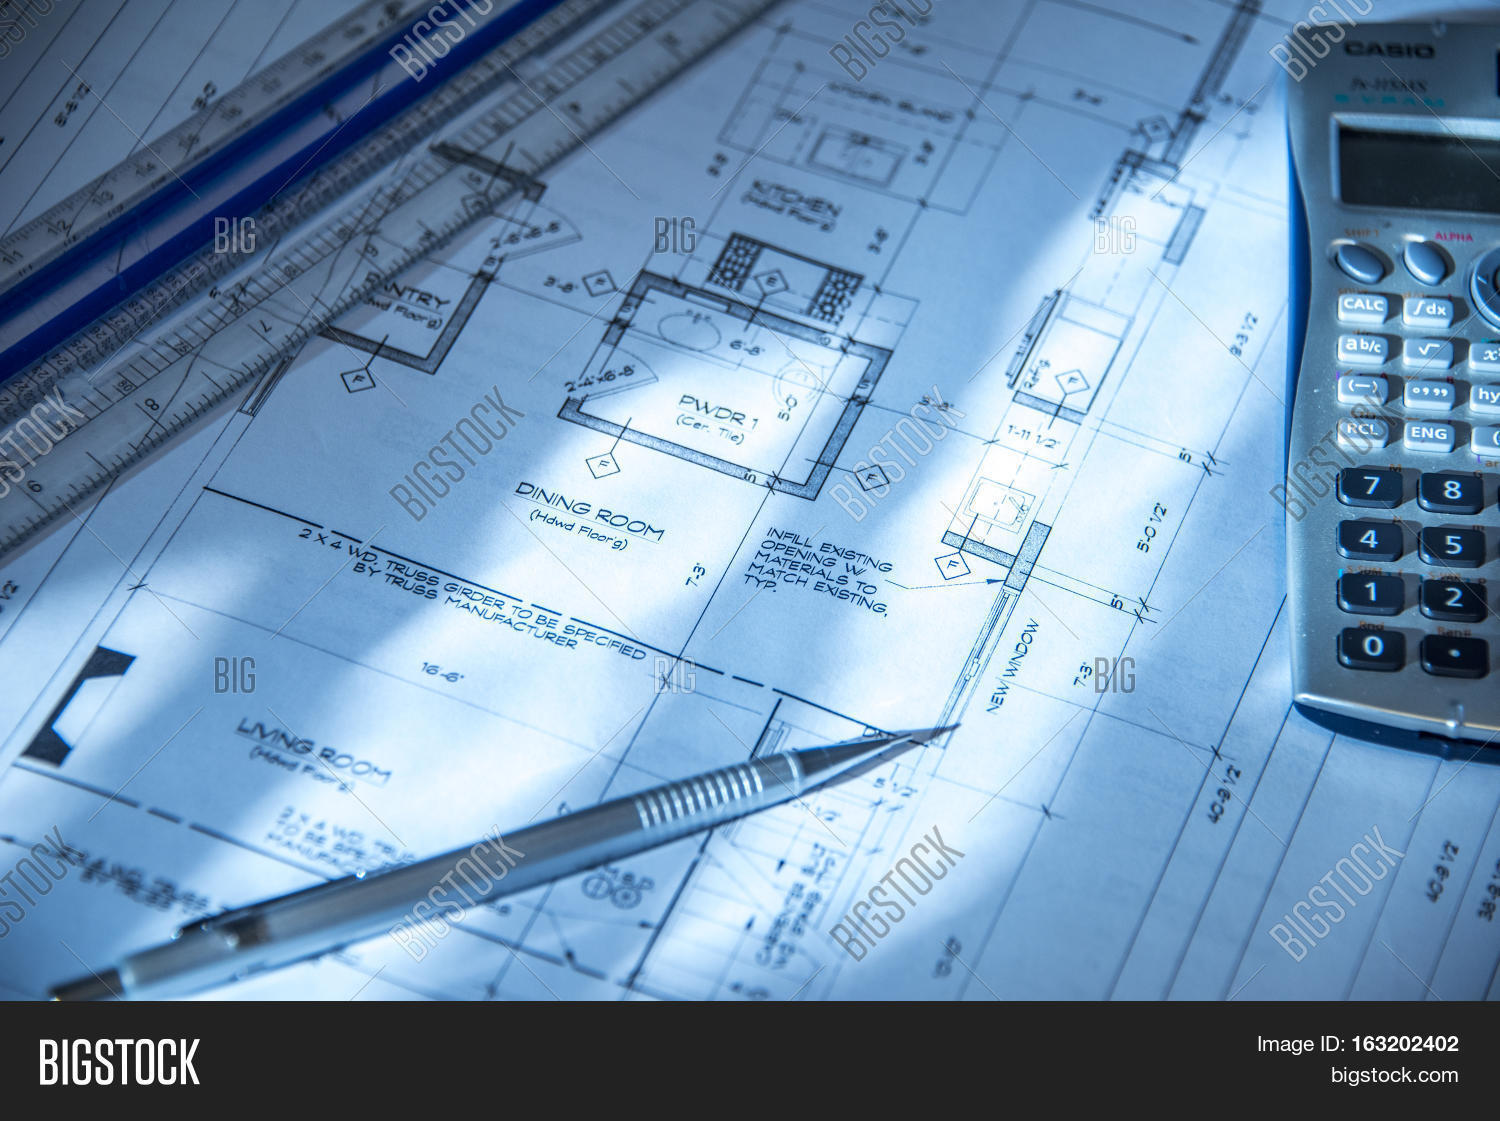 House construction image photo free trial bigstock house construction architect working on new house construction blueprint house construction plans calculator malvernweather Choice Image